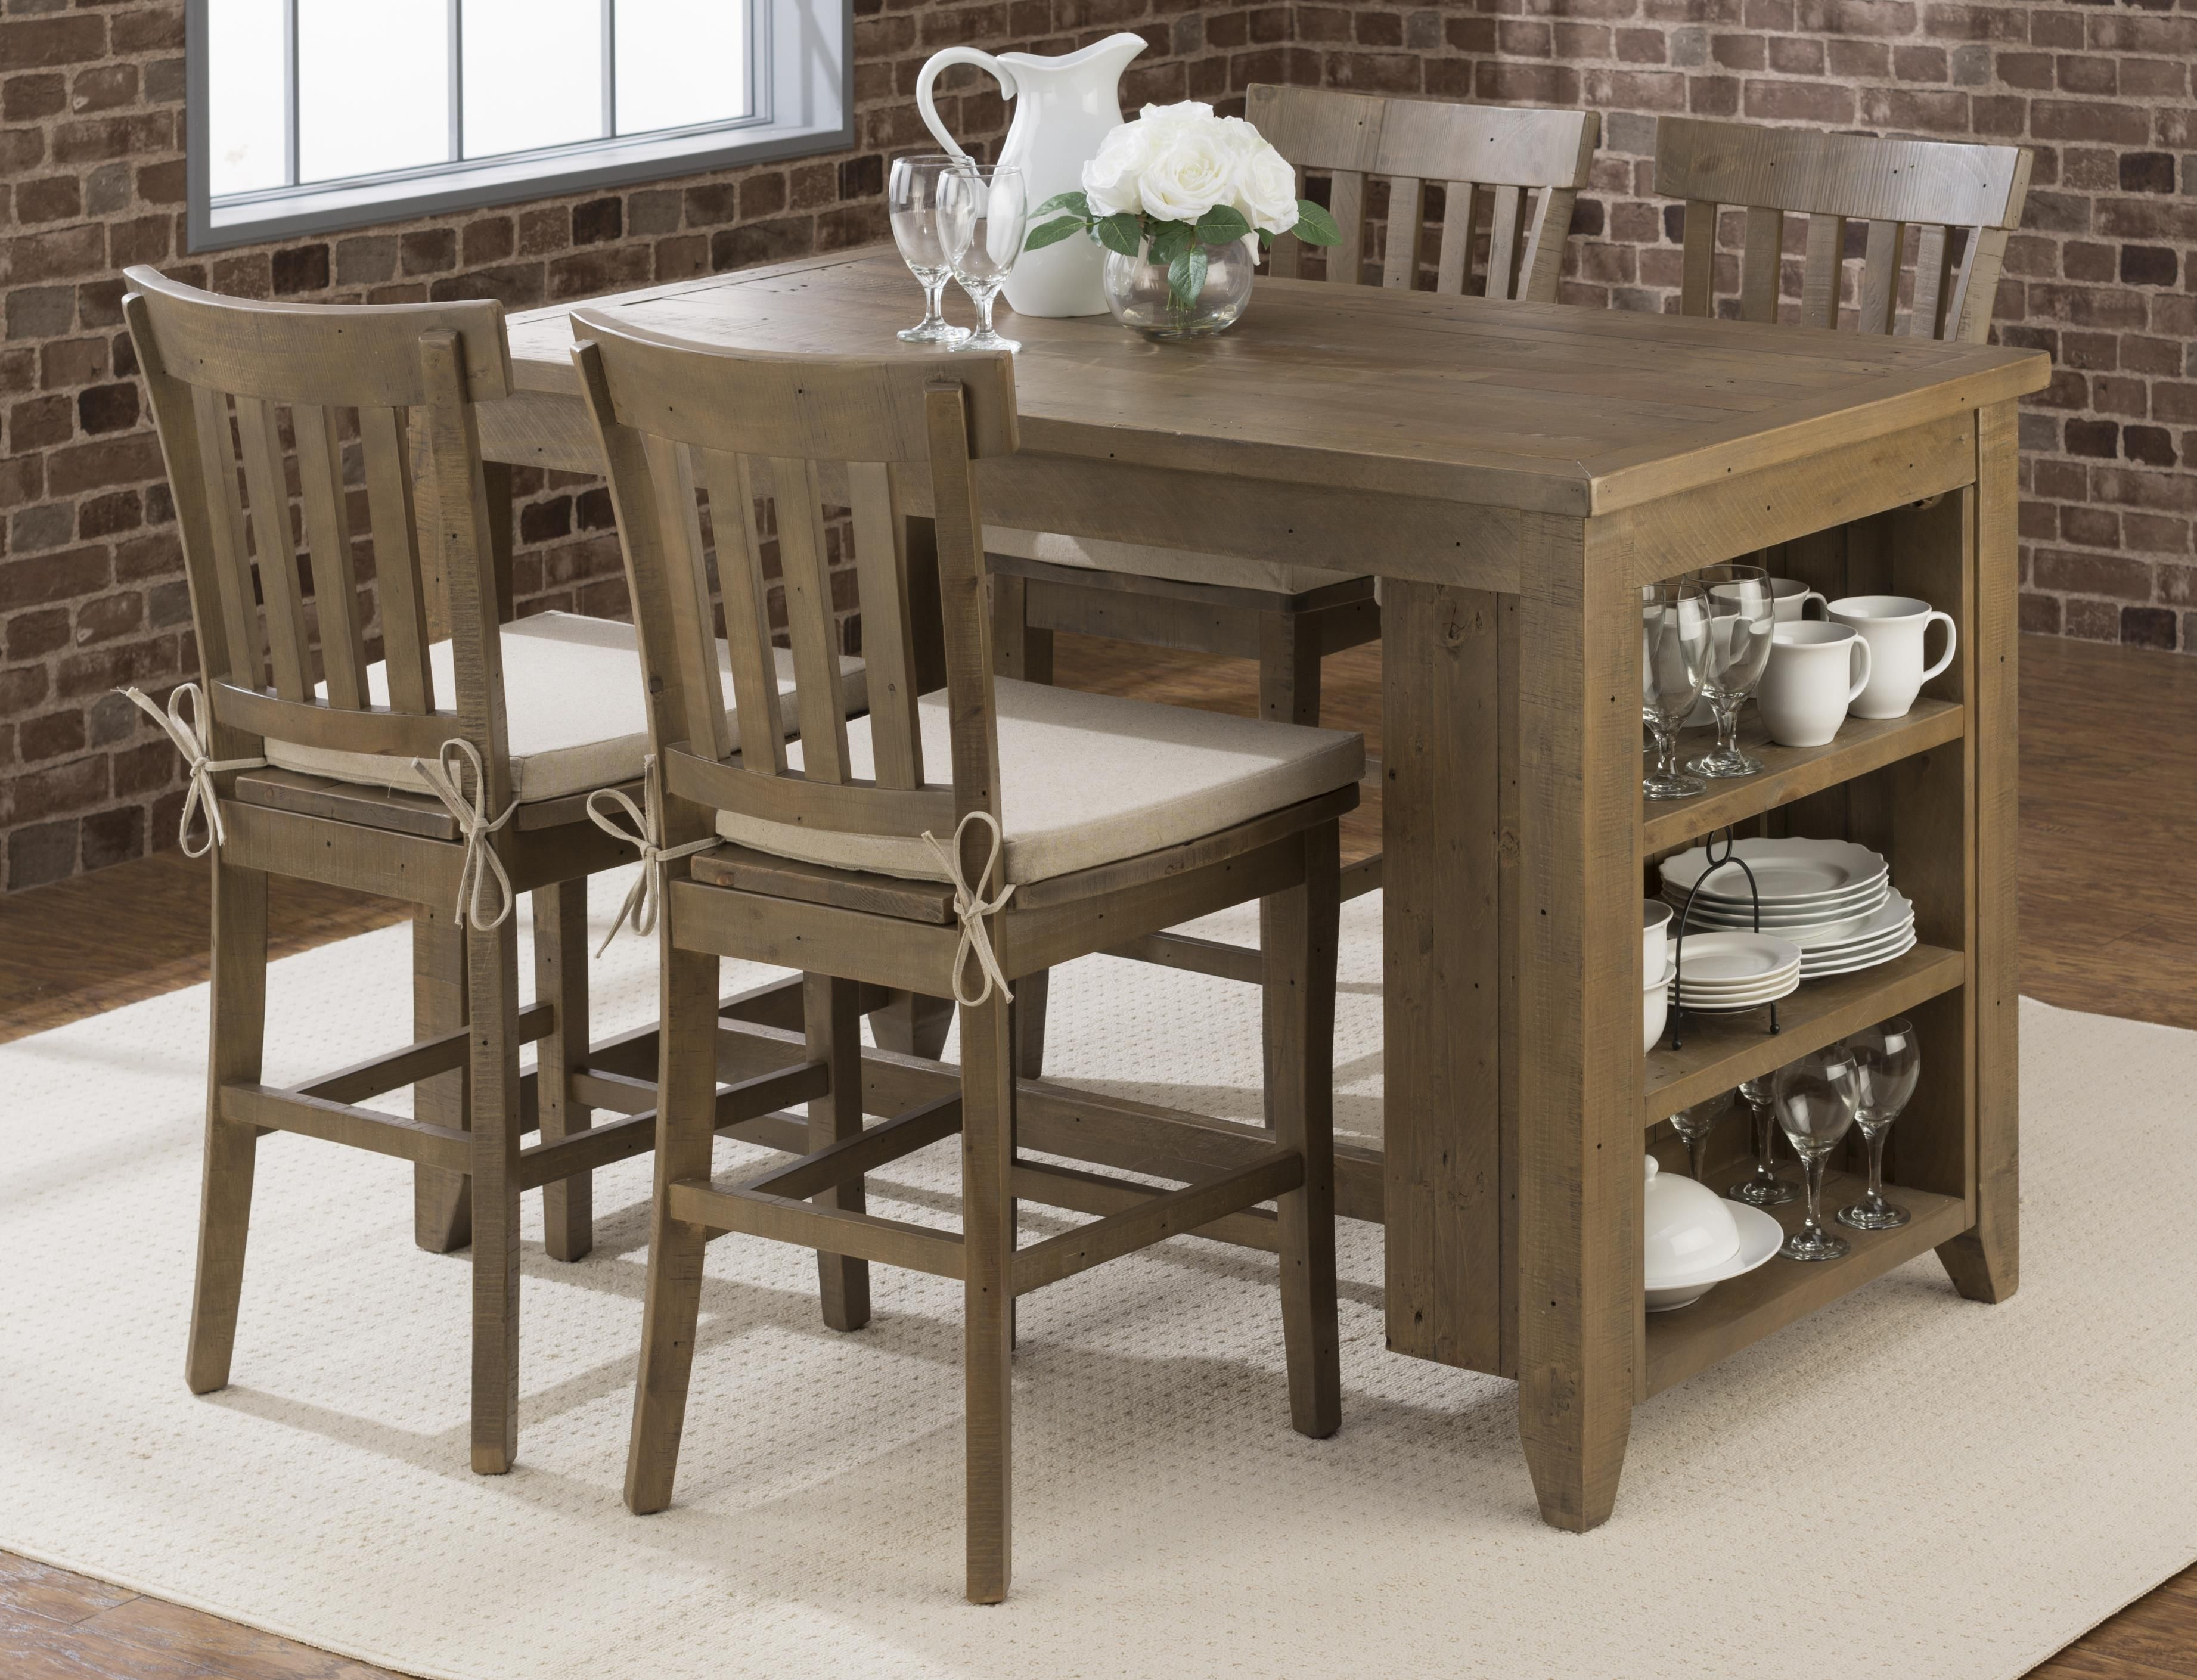 Slater Mill Pine Counter Height Storage Table With Stool Set By Jofran At Furniture Options New Counter Height Dining Table Counter Height Table Pub Table Sets